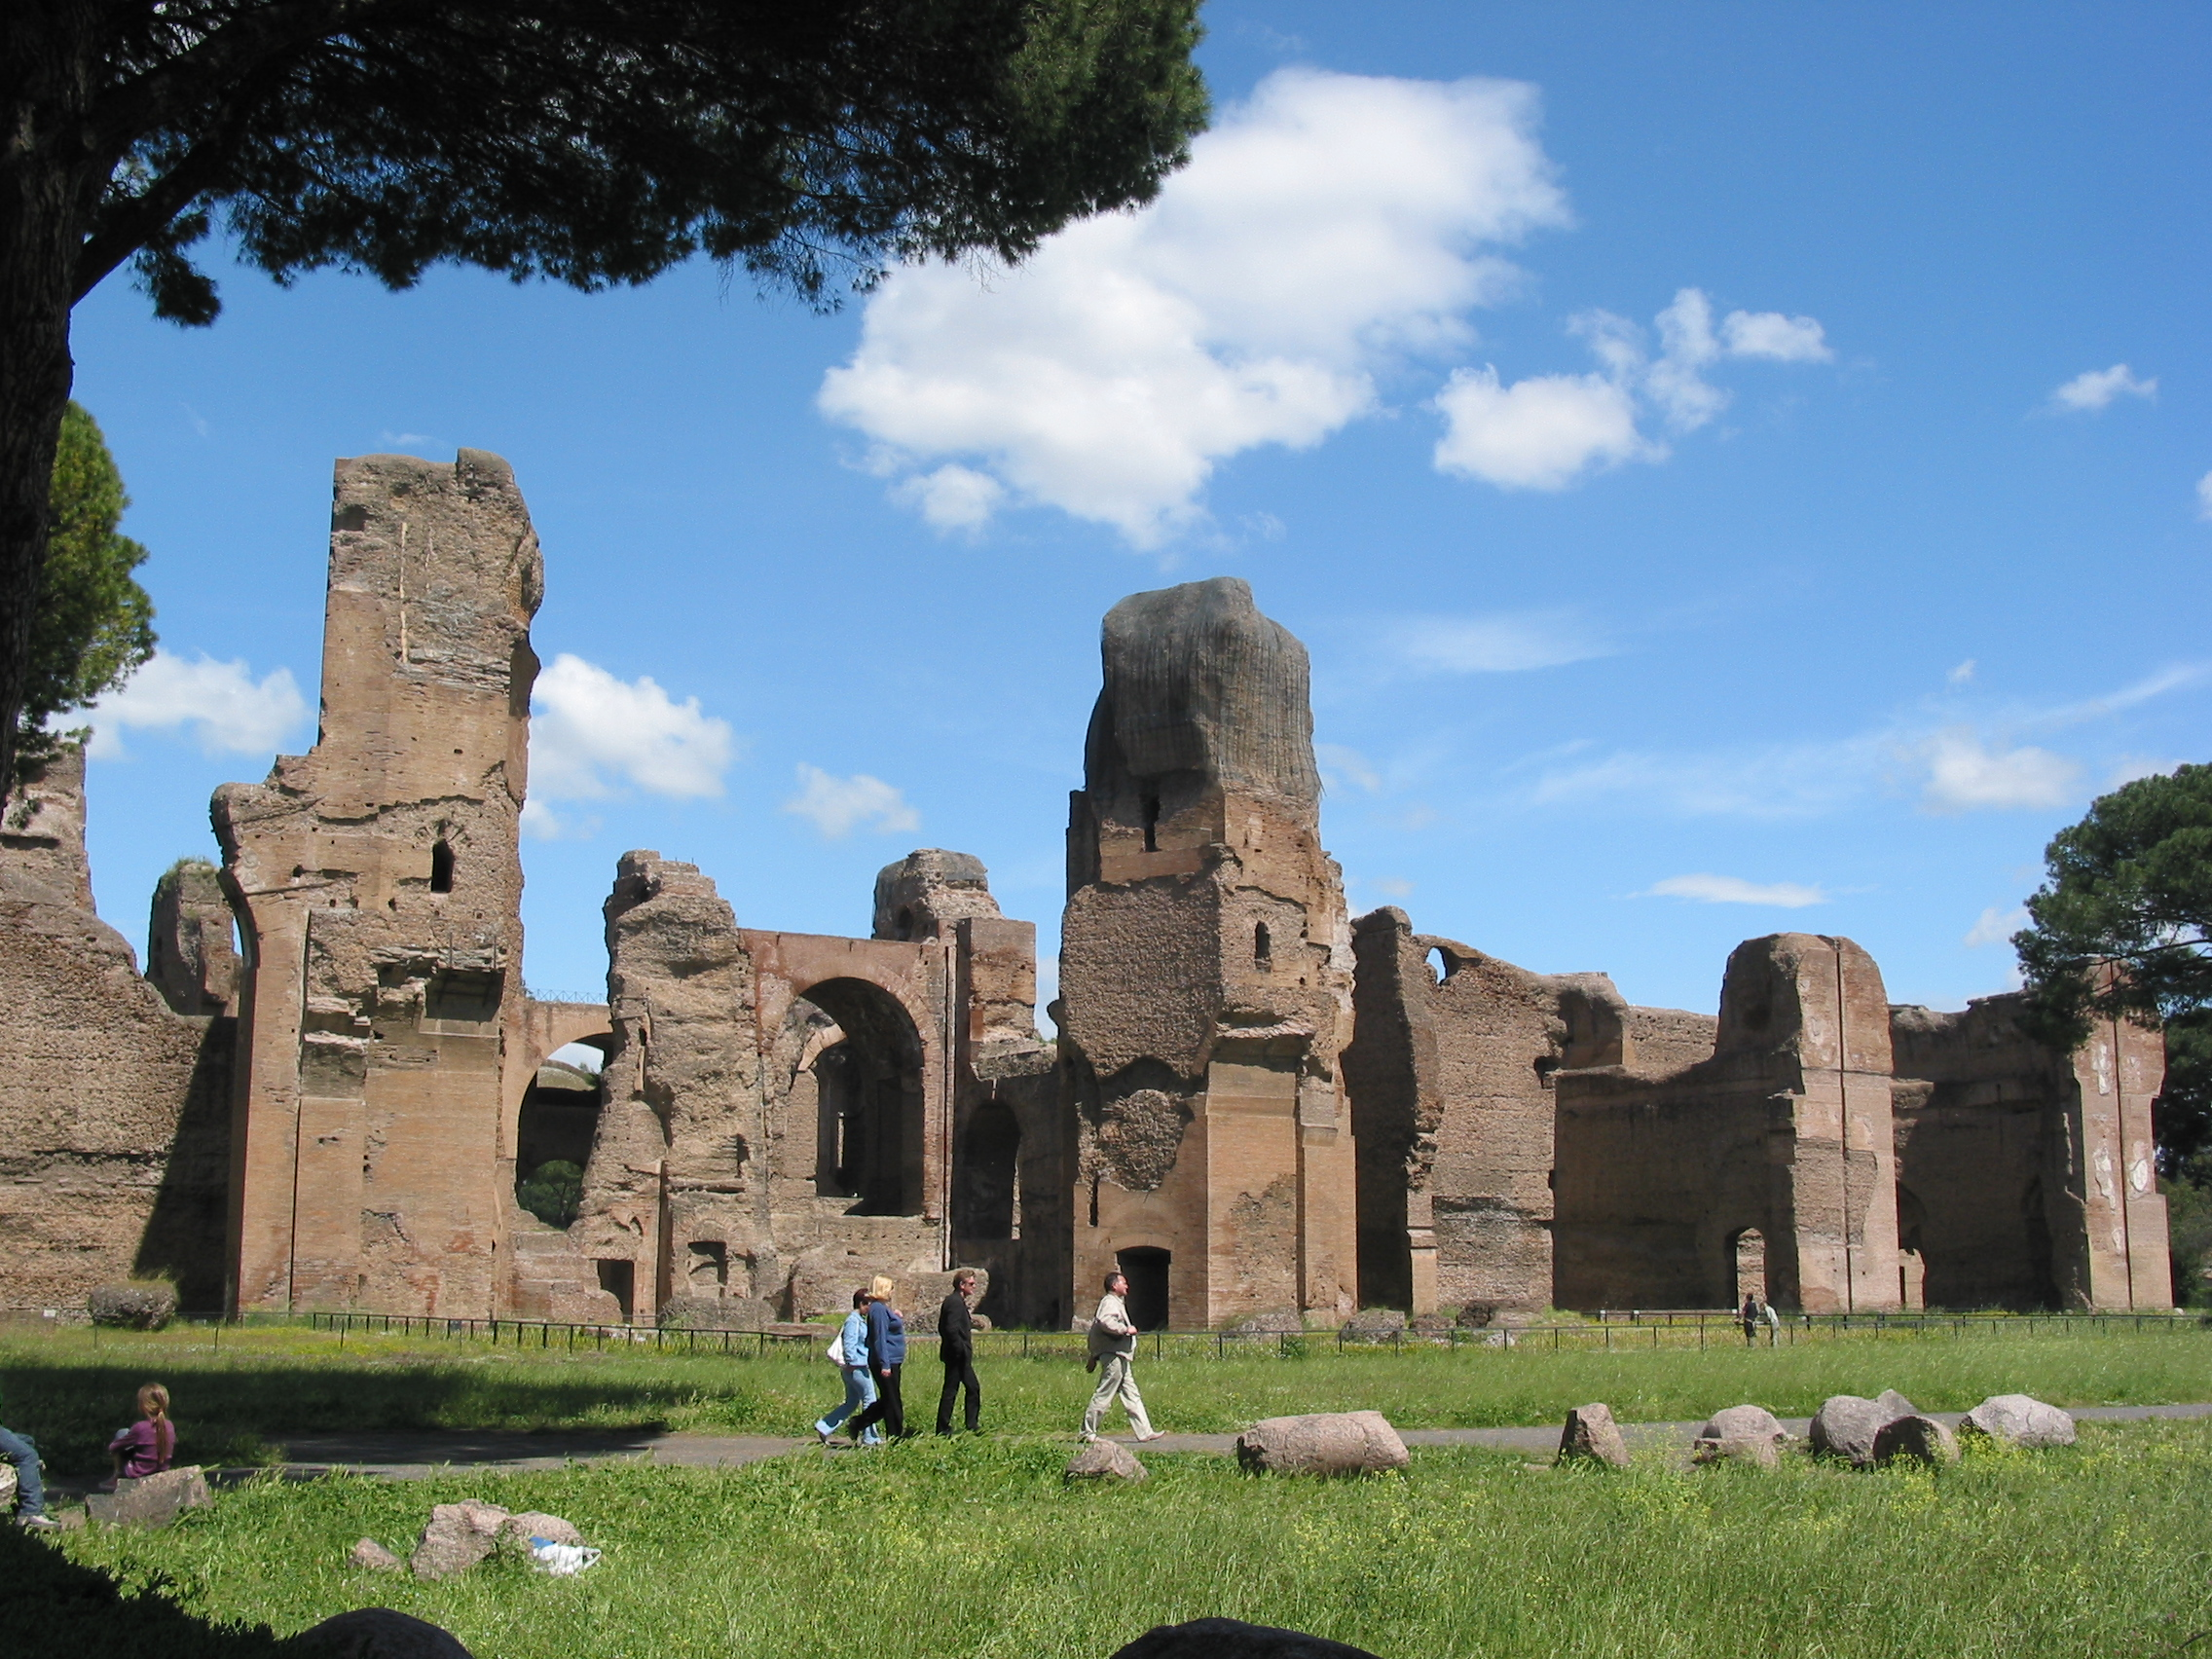 Summer In Rome: Opera At Baths Of Caracalla